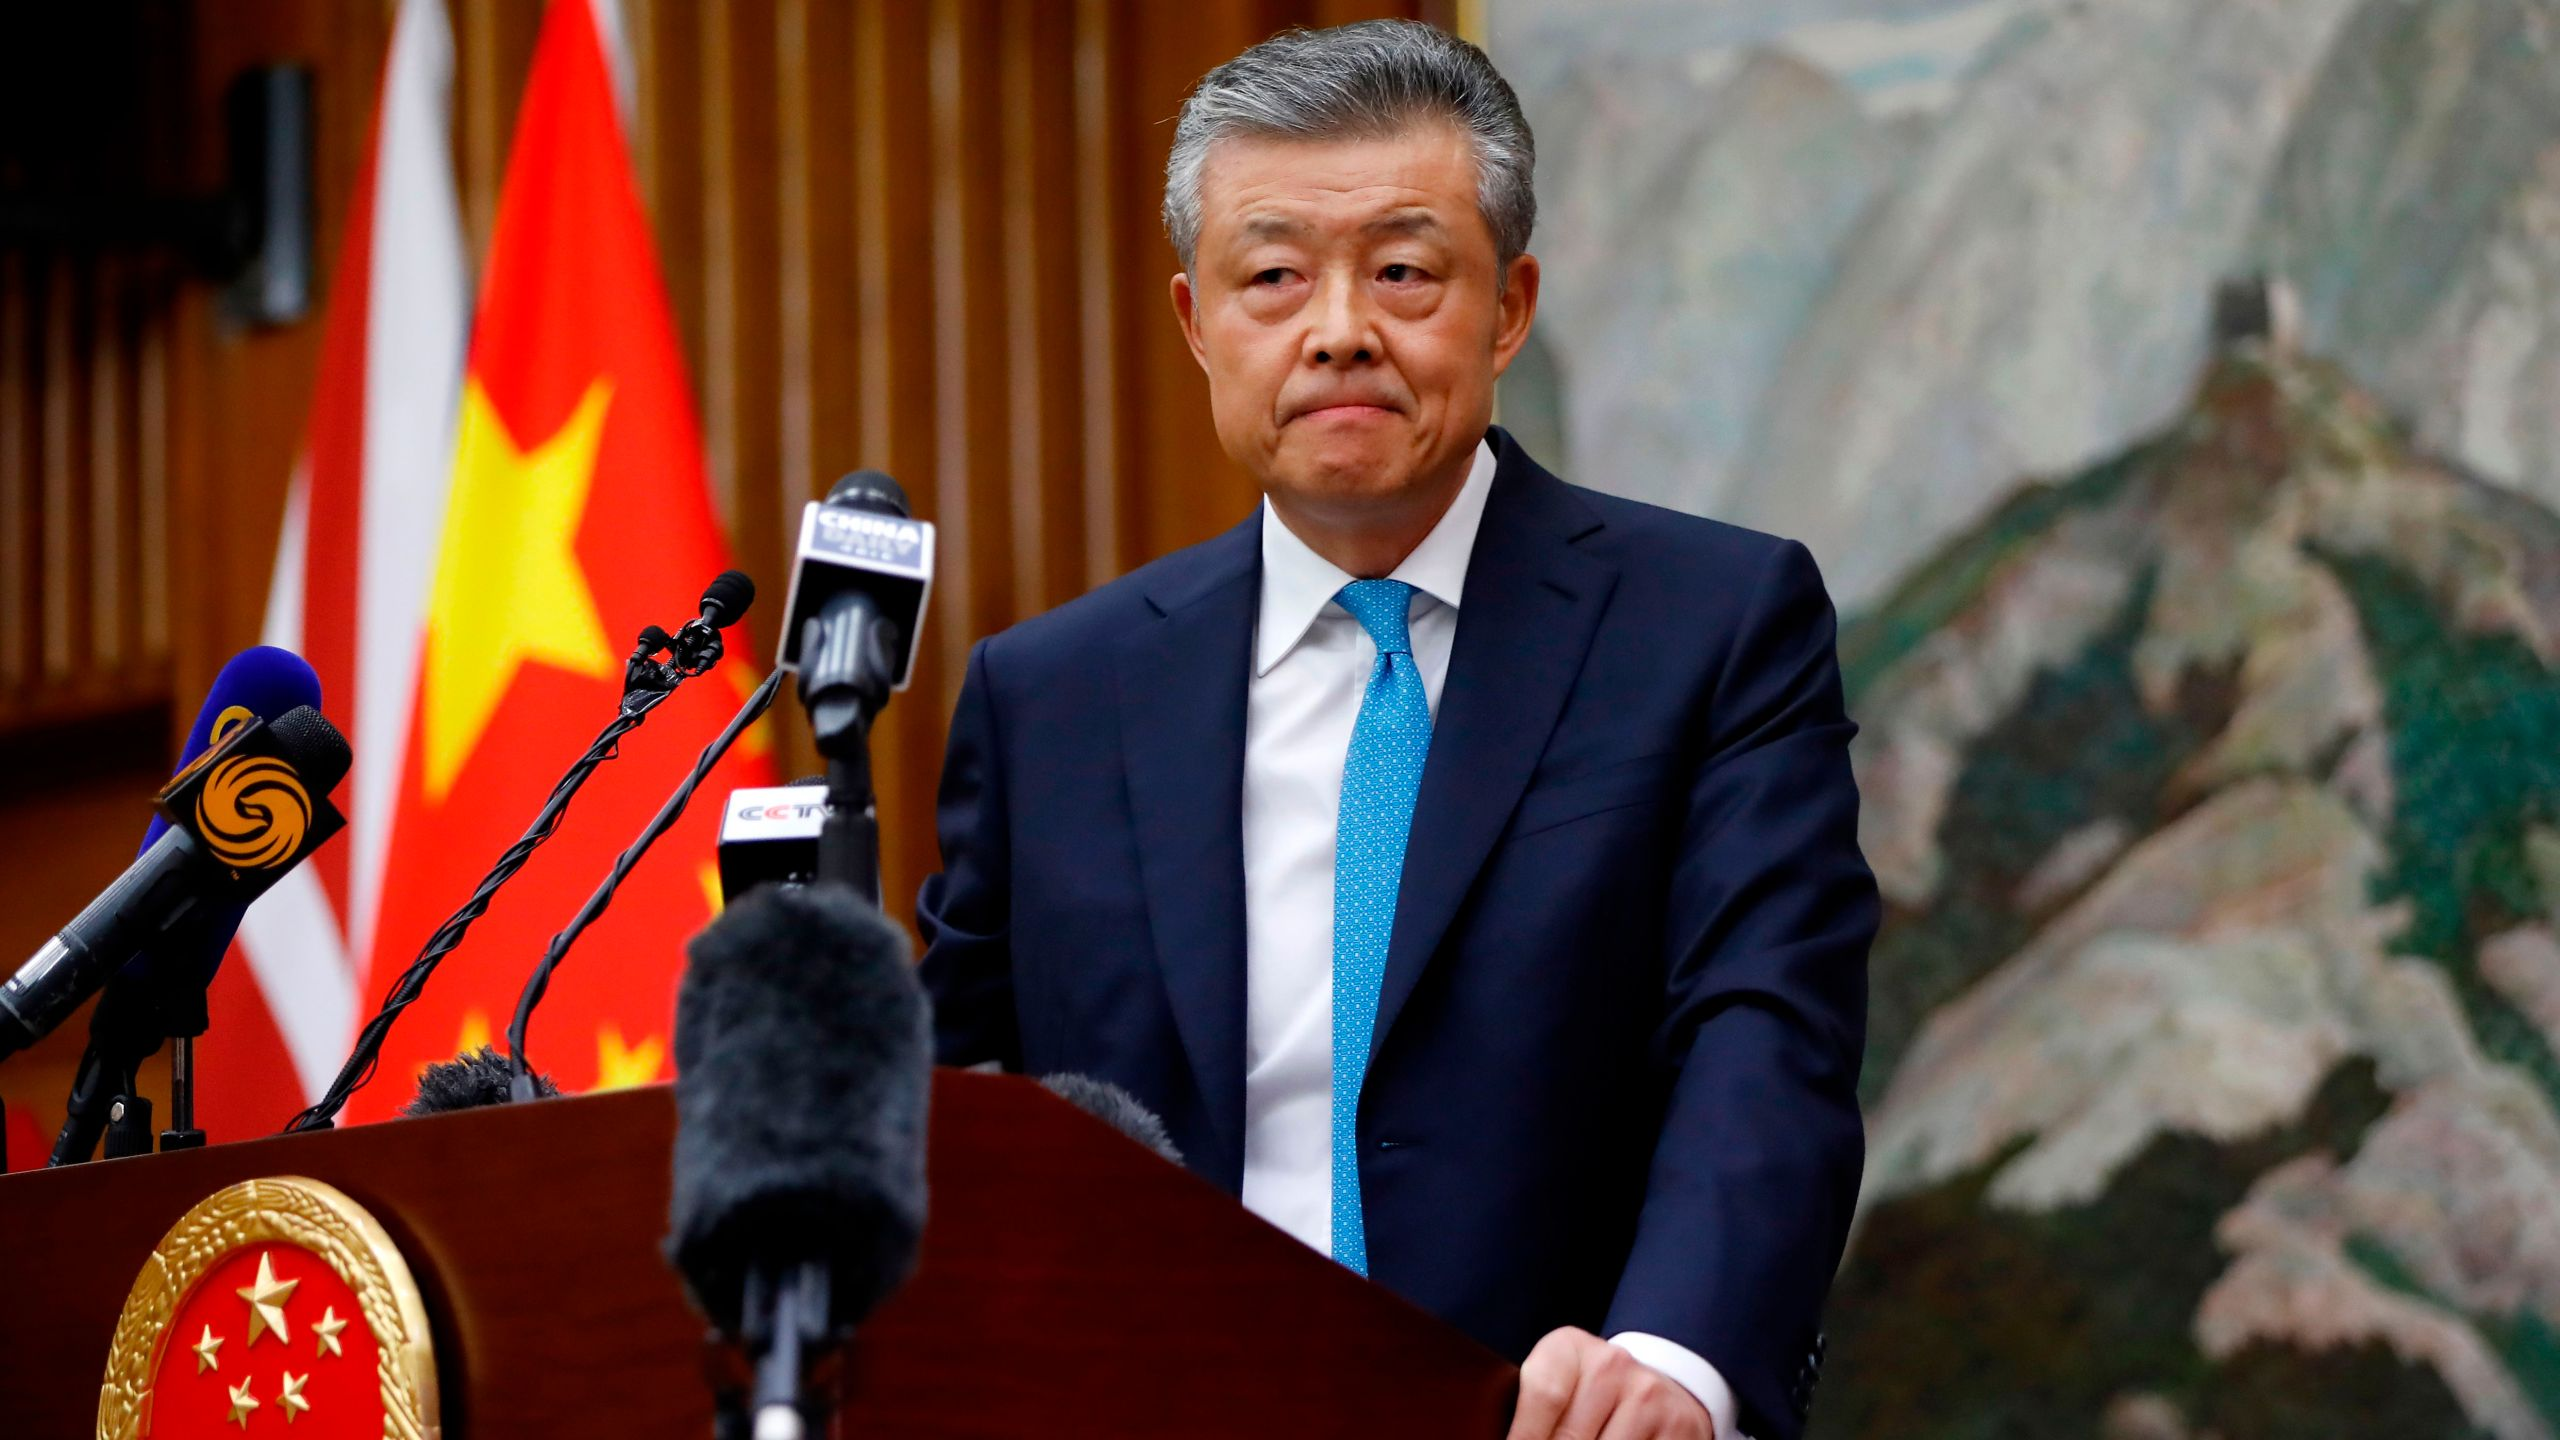 China's ambassador to Britain Liu Xiaoming takes questions from members of the media at the Chinese Embassy in London on Feb. 6, 2020, during a press conference relating to the COVID-19 outbreak in Wuhan, Hubei province. (TOLGA AKMEN/AFP via Getty Images)